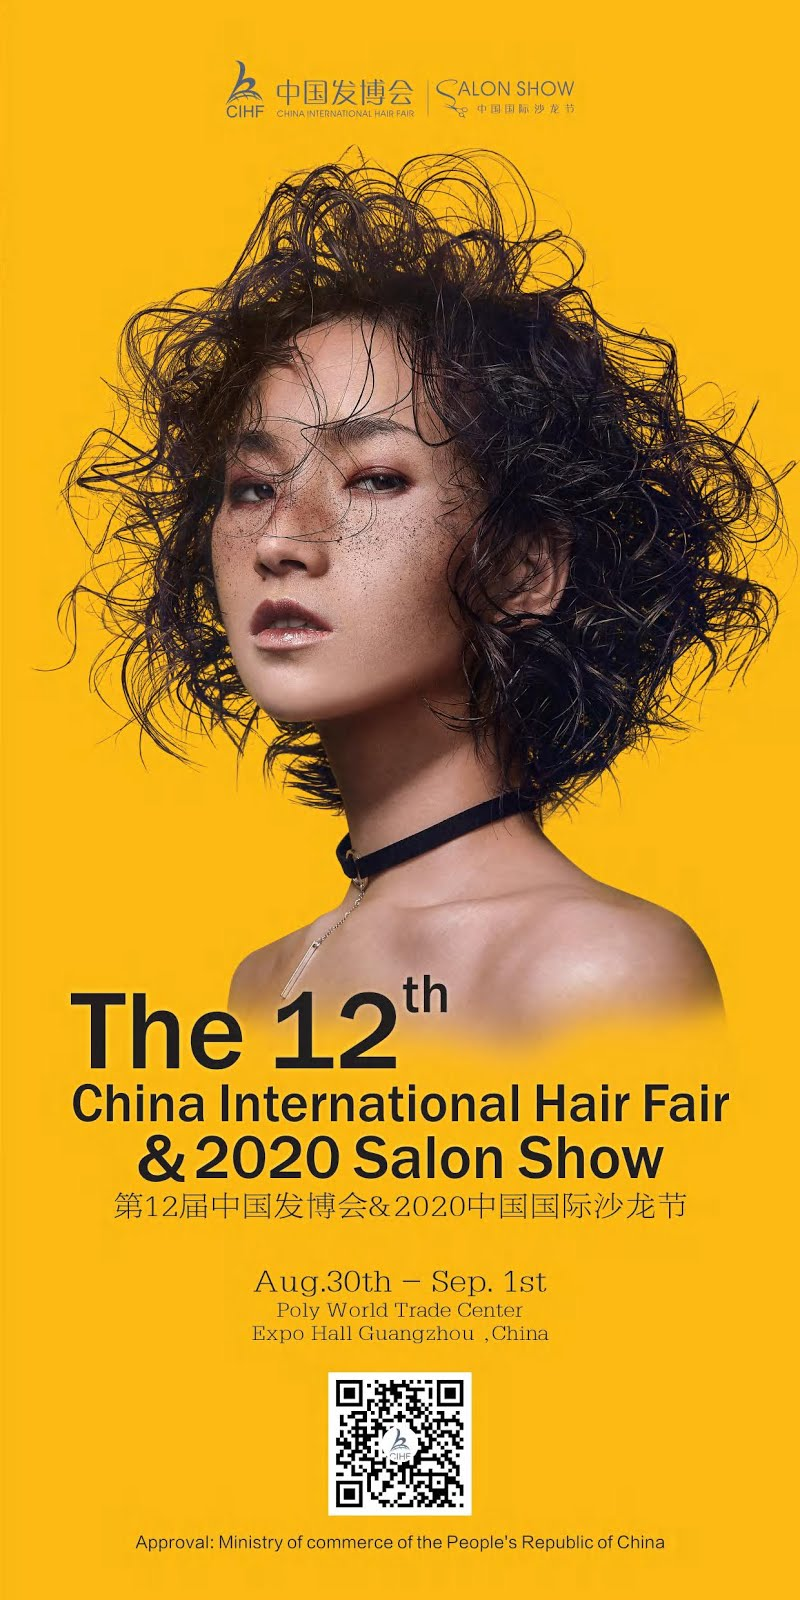 PARTNER OF CHINA INTERNATIONAL HAIR FAIR